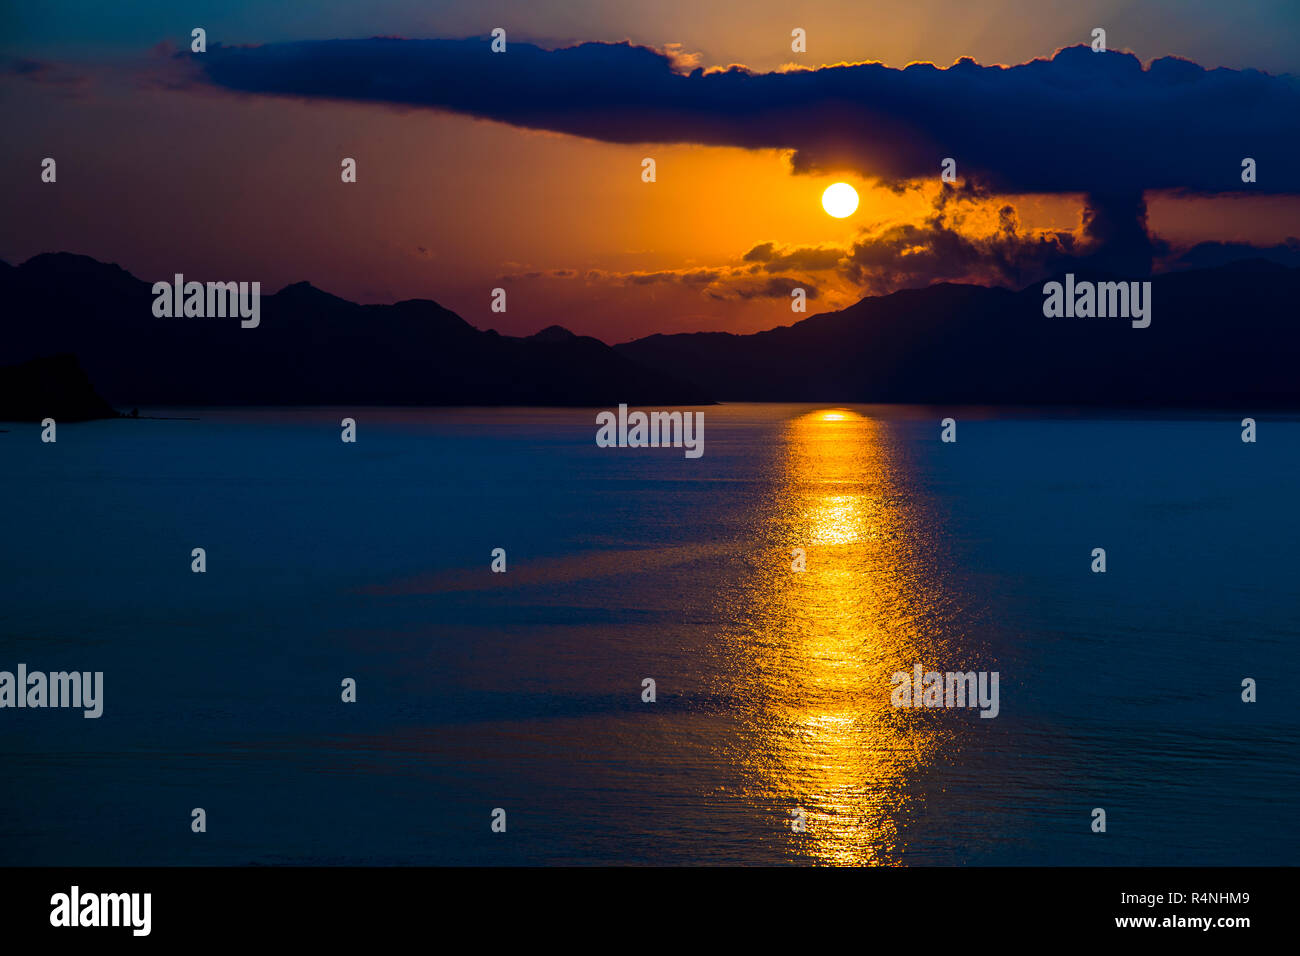 Sunset from the same viewpoint on Komodo Island, Indonesia (sequence of images) - Stock Image